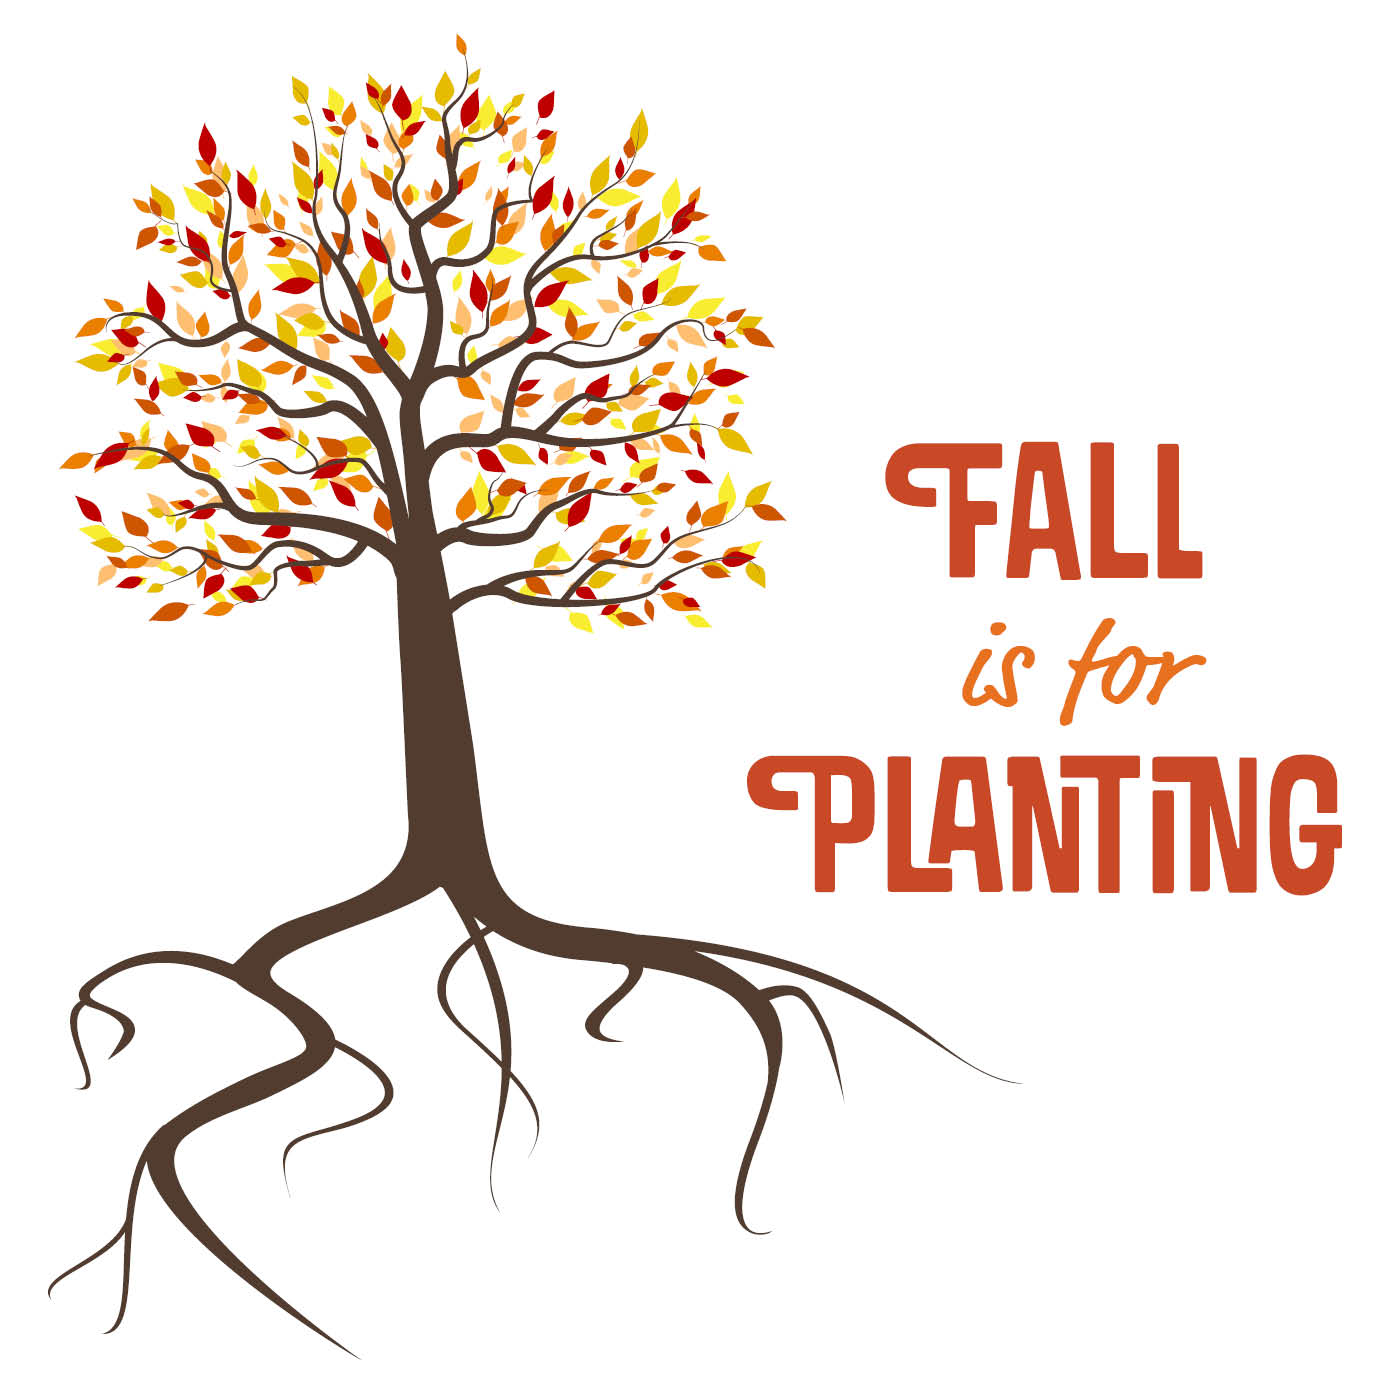 Fall Is for Planting